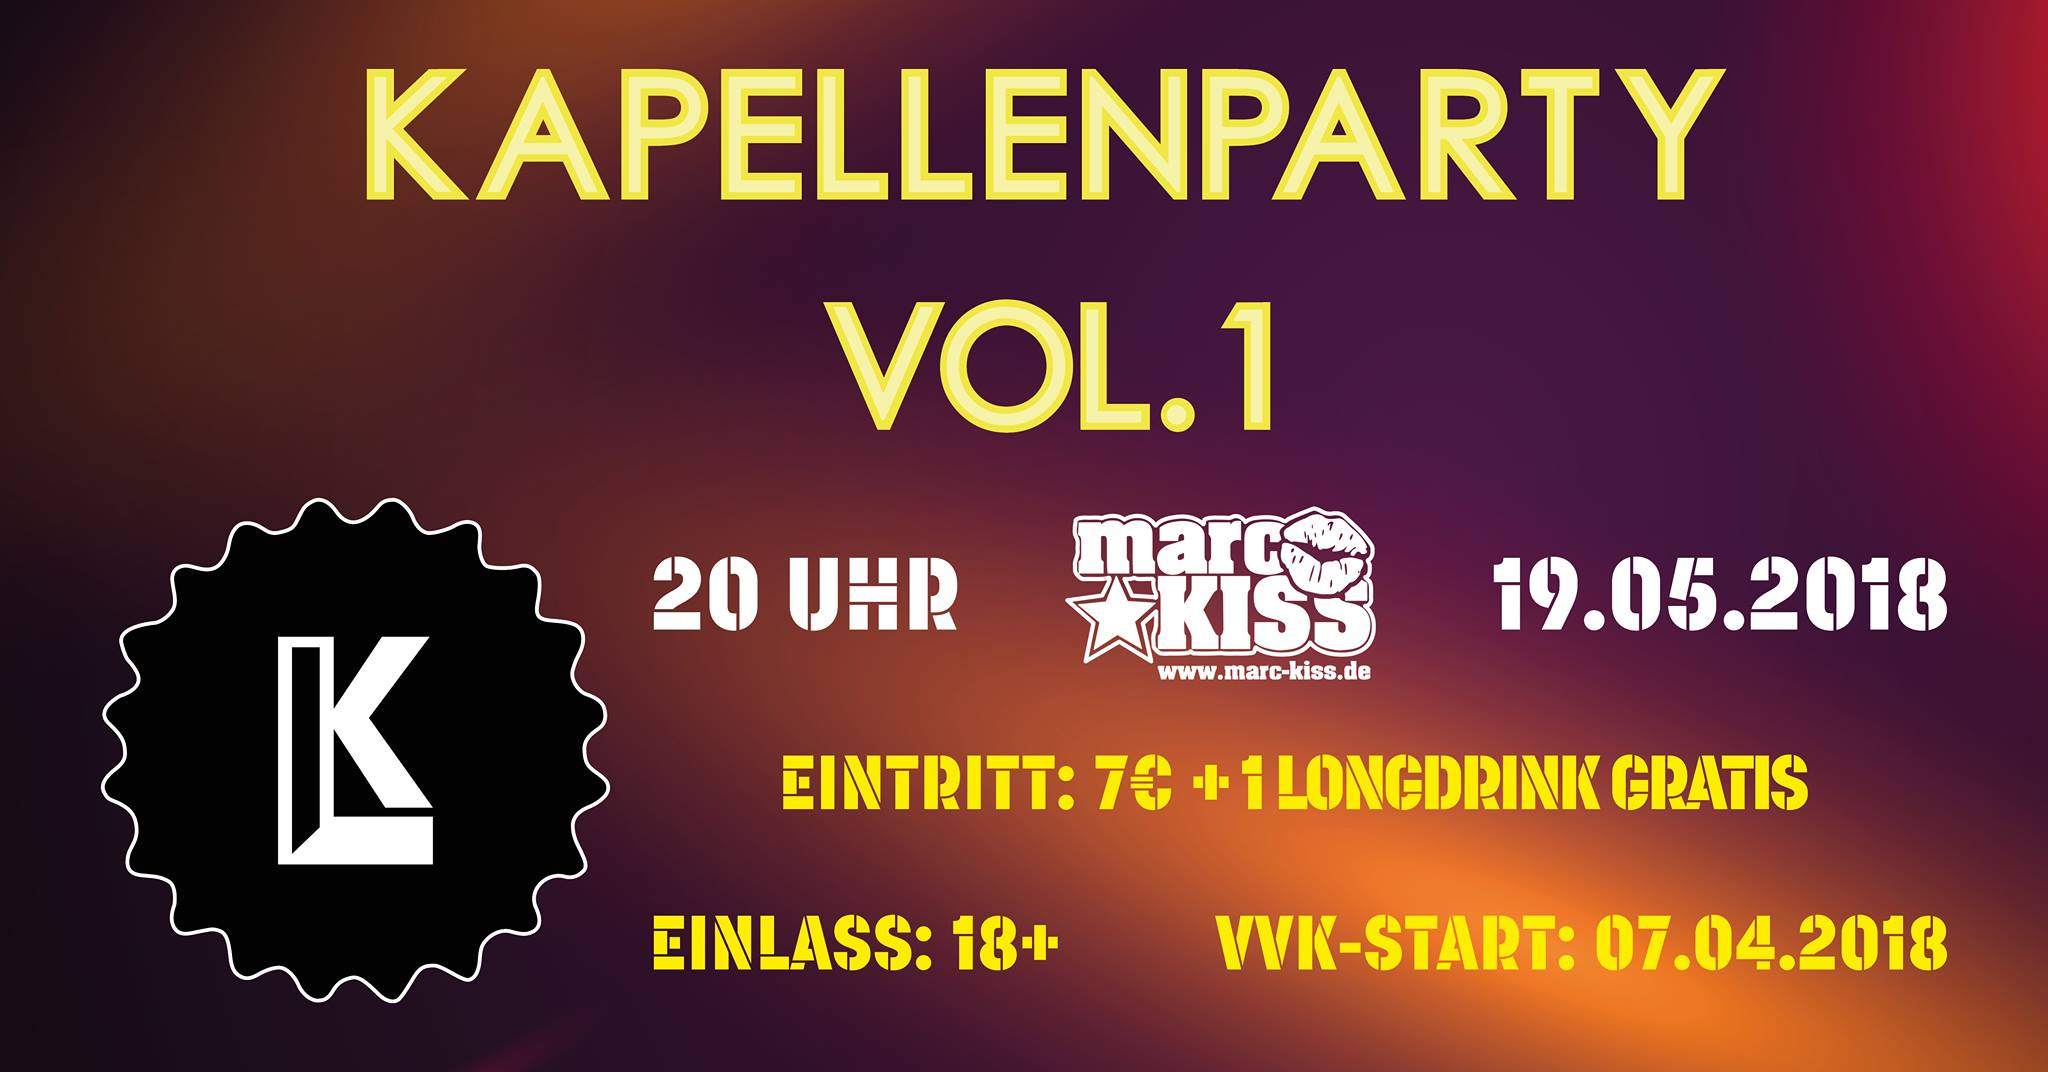 Kapellenparty Vol.1  19.05.2018